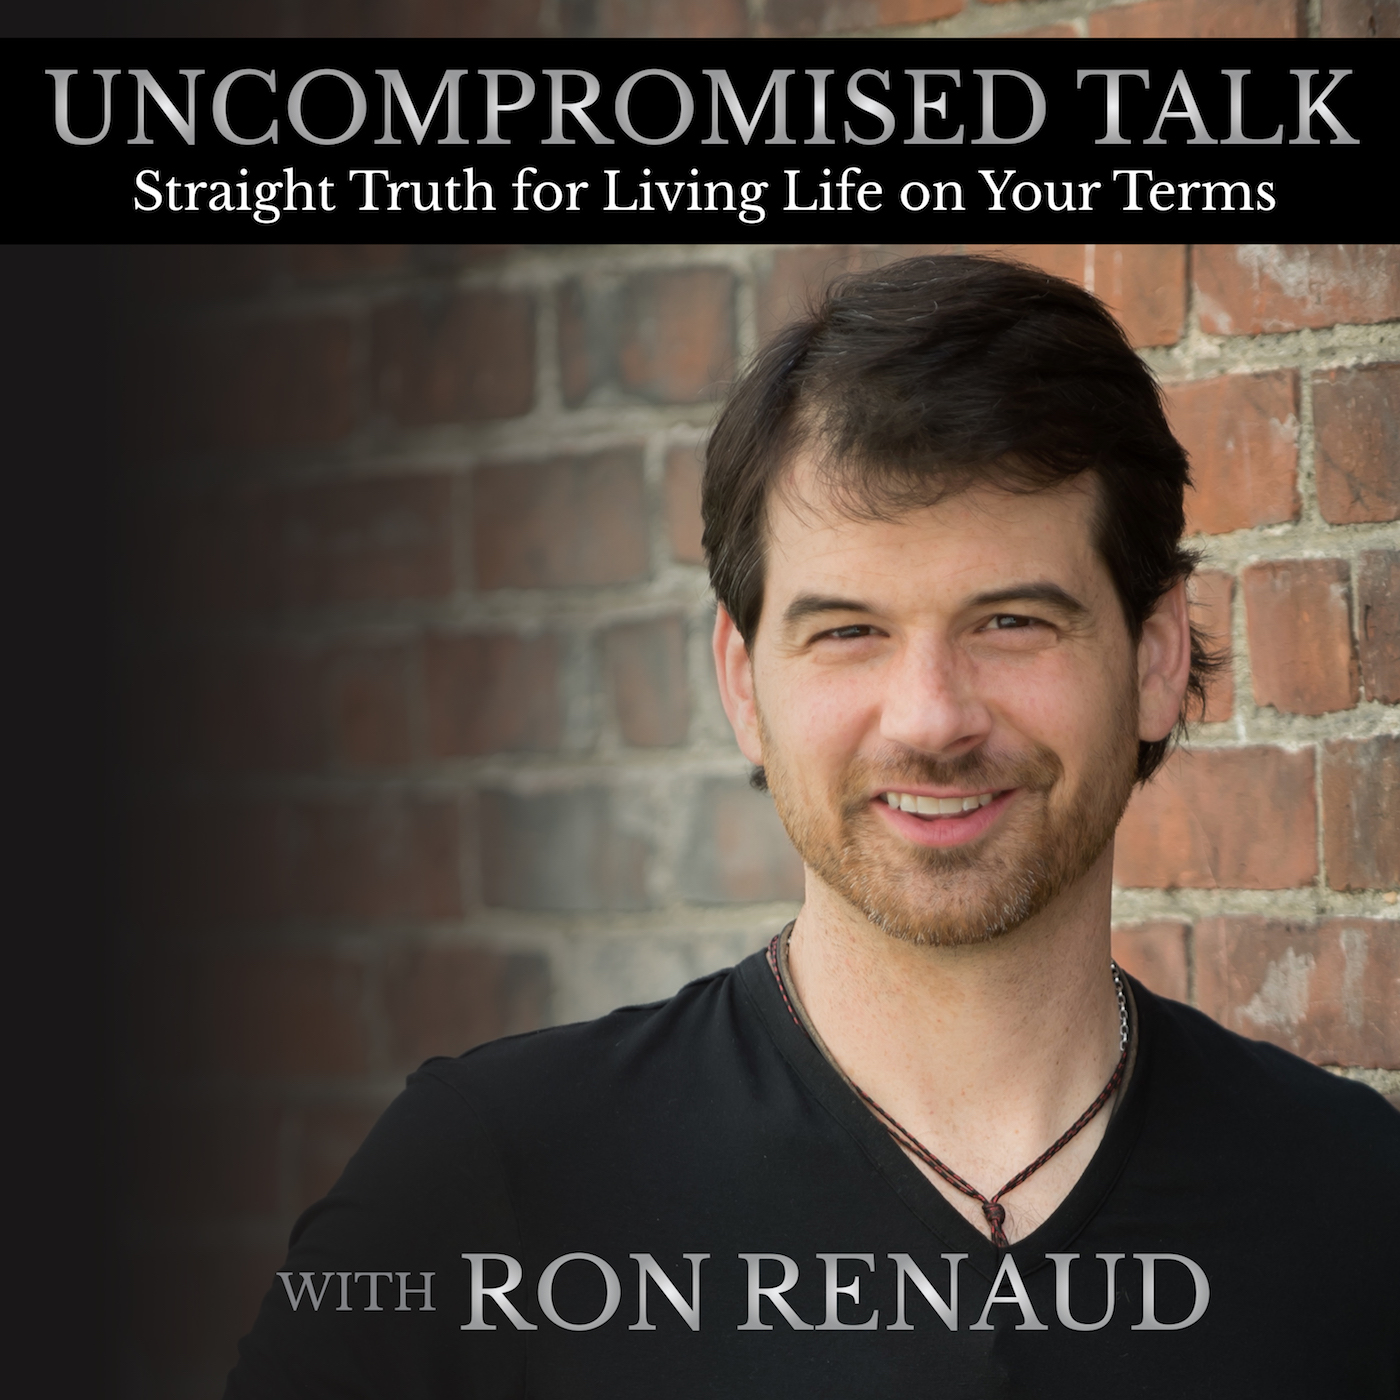 Ron Renaud's Uncompromised Talk show art